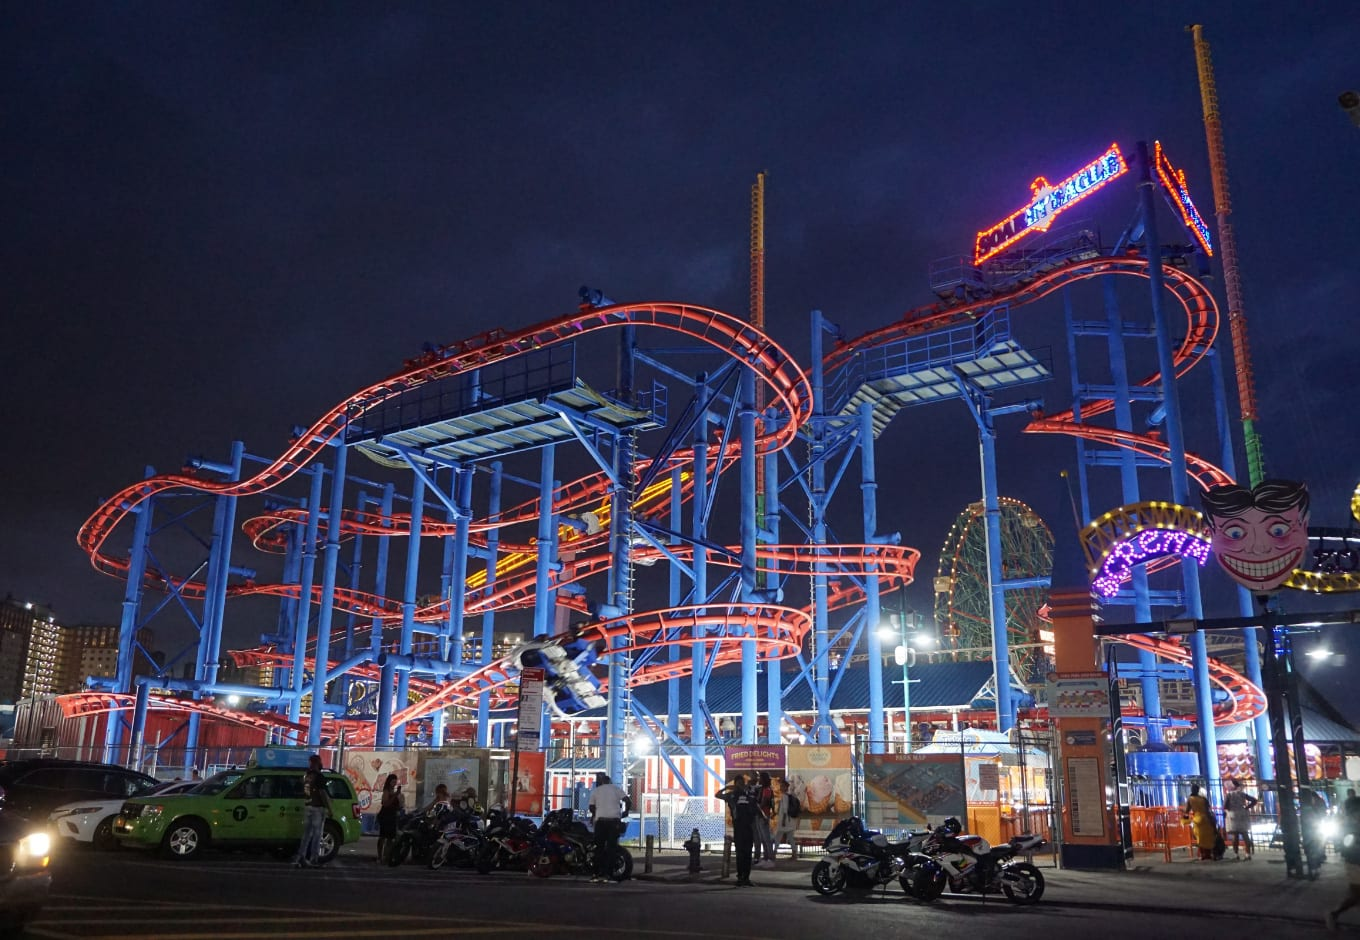 Coney Island during the month of December in holiday season